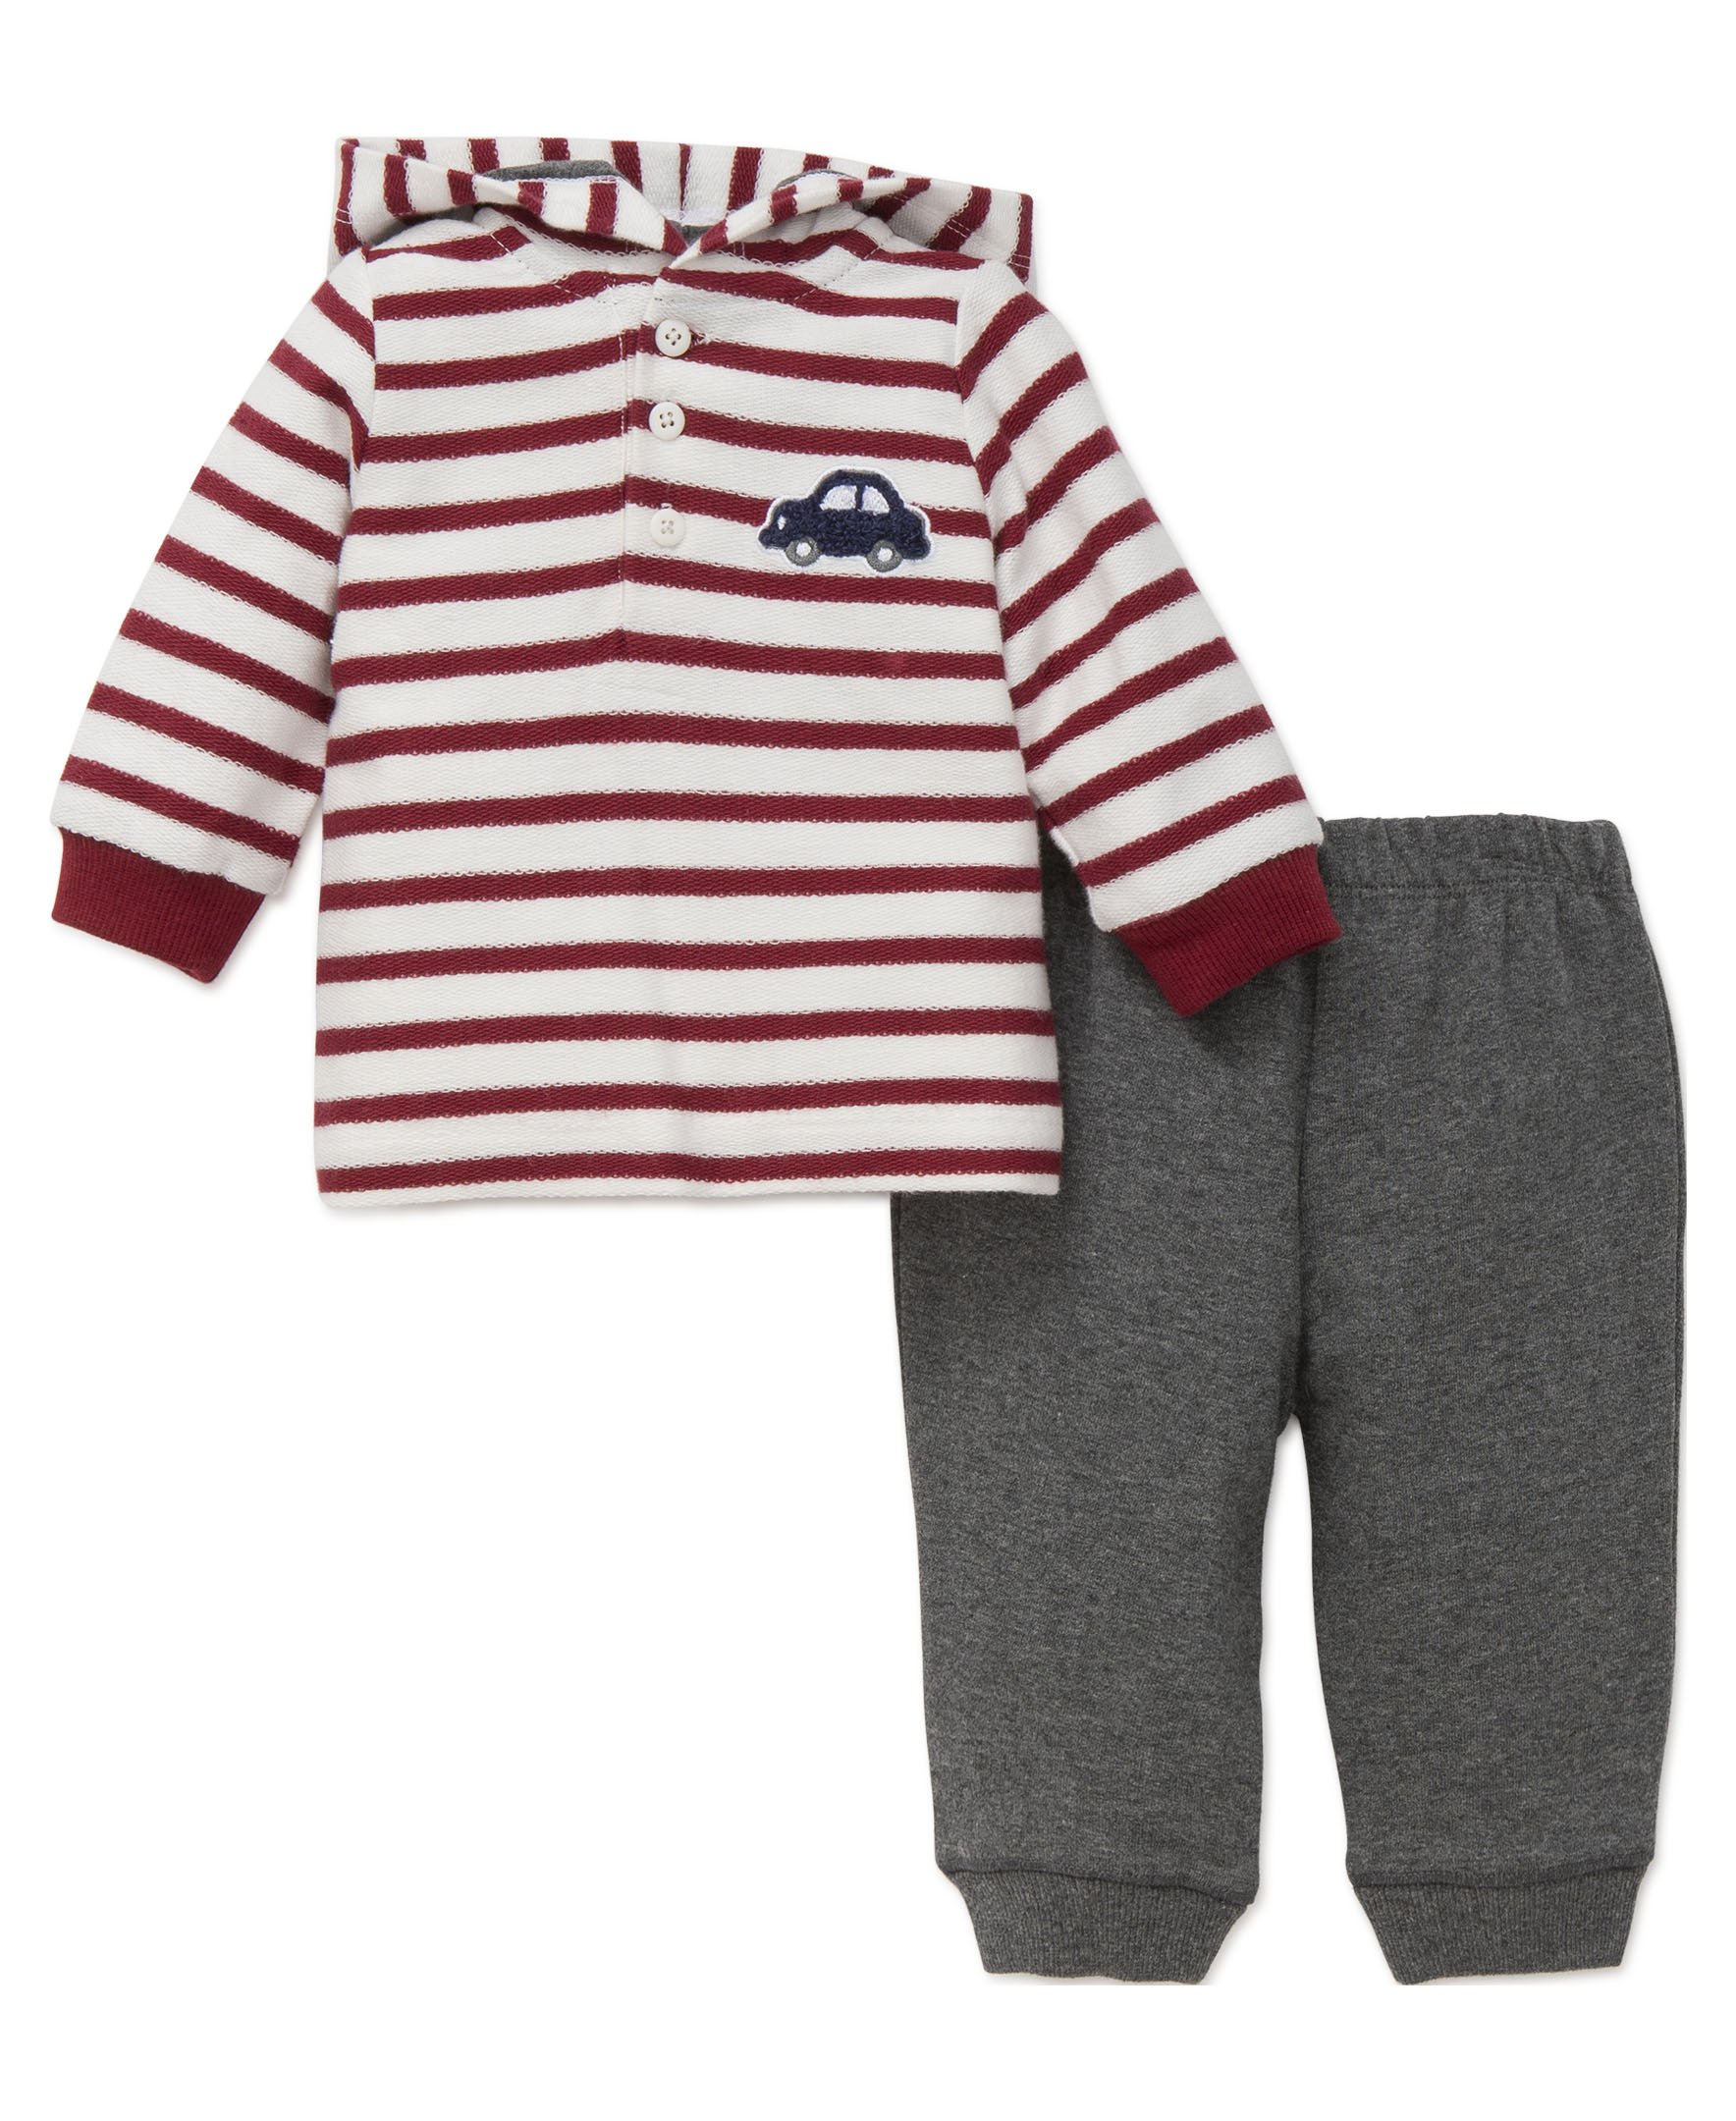 Little Me Boys' 2-Piece Hoodie Set